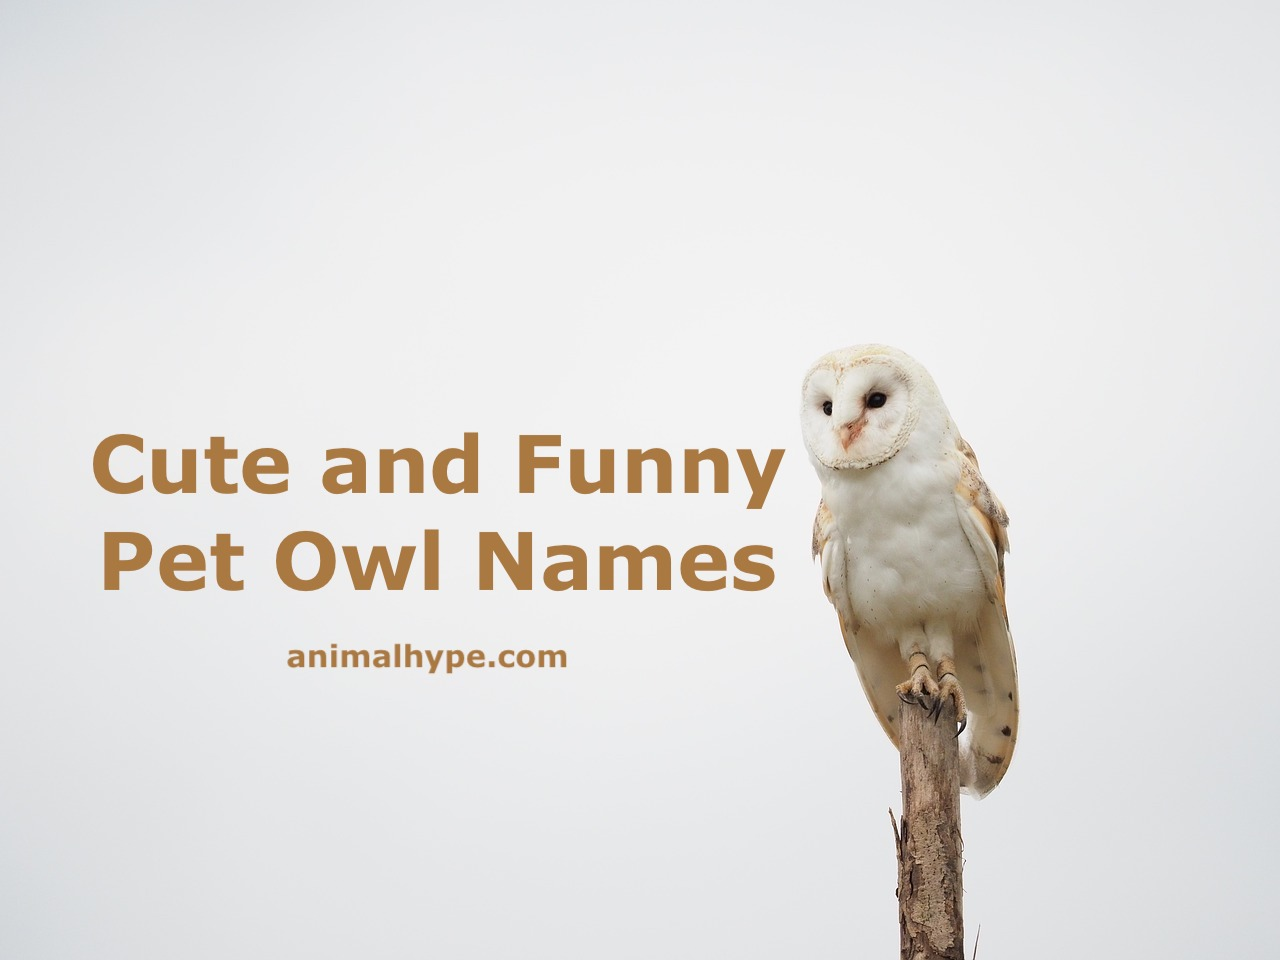 Cute and Funny Owl Names